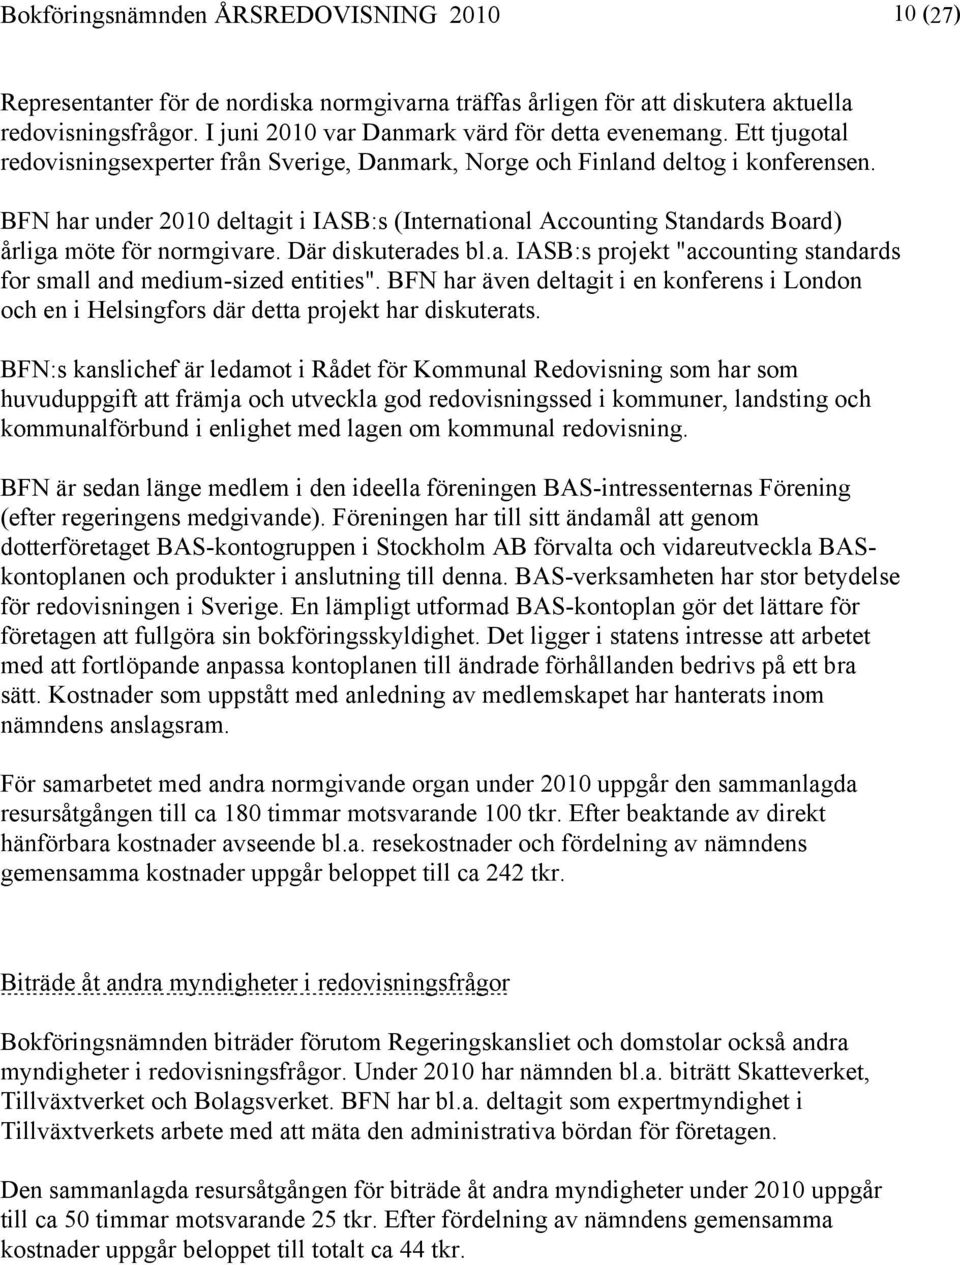 "BFN har under 2010 deltagit i IASB:s (International Accounting Standards Board) årliga möte för normgivare. Där diskuterades bl.a. IASB:s projekt ""accounting standards for small and medium-sized entities""."